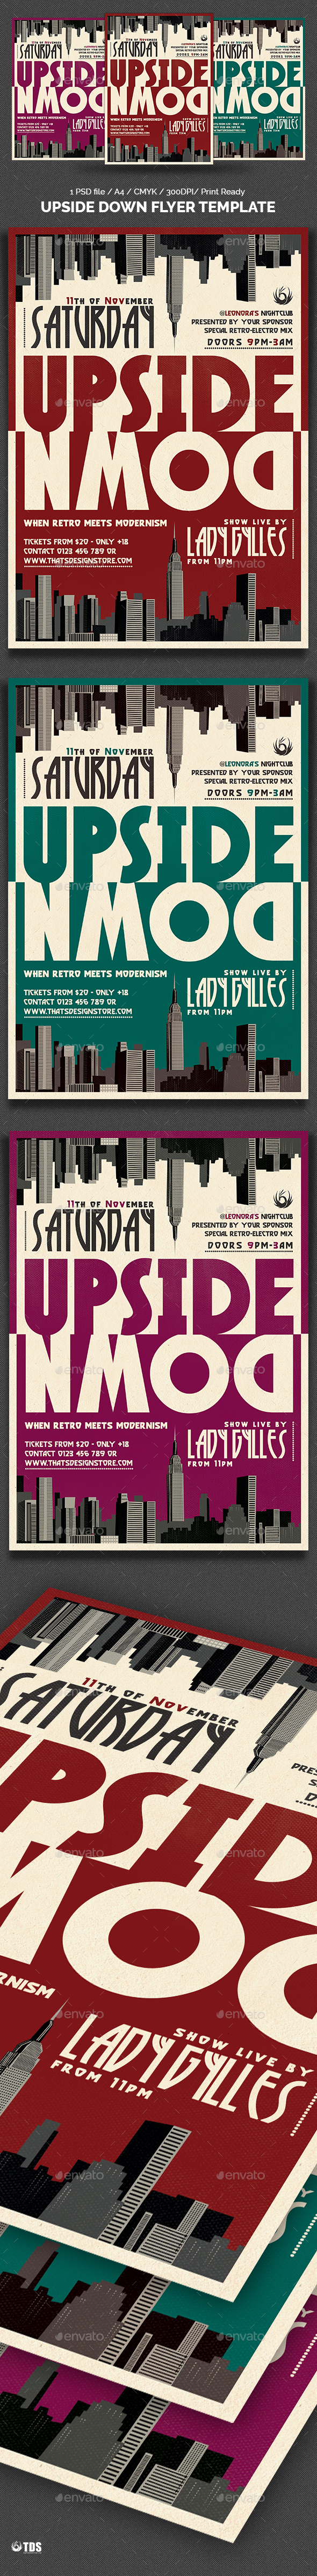 Upside Down Flyer Template - Clubs & Parties Events